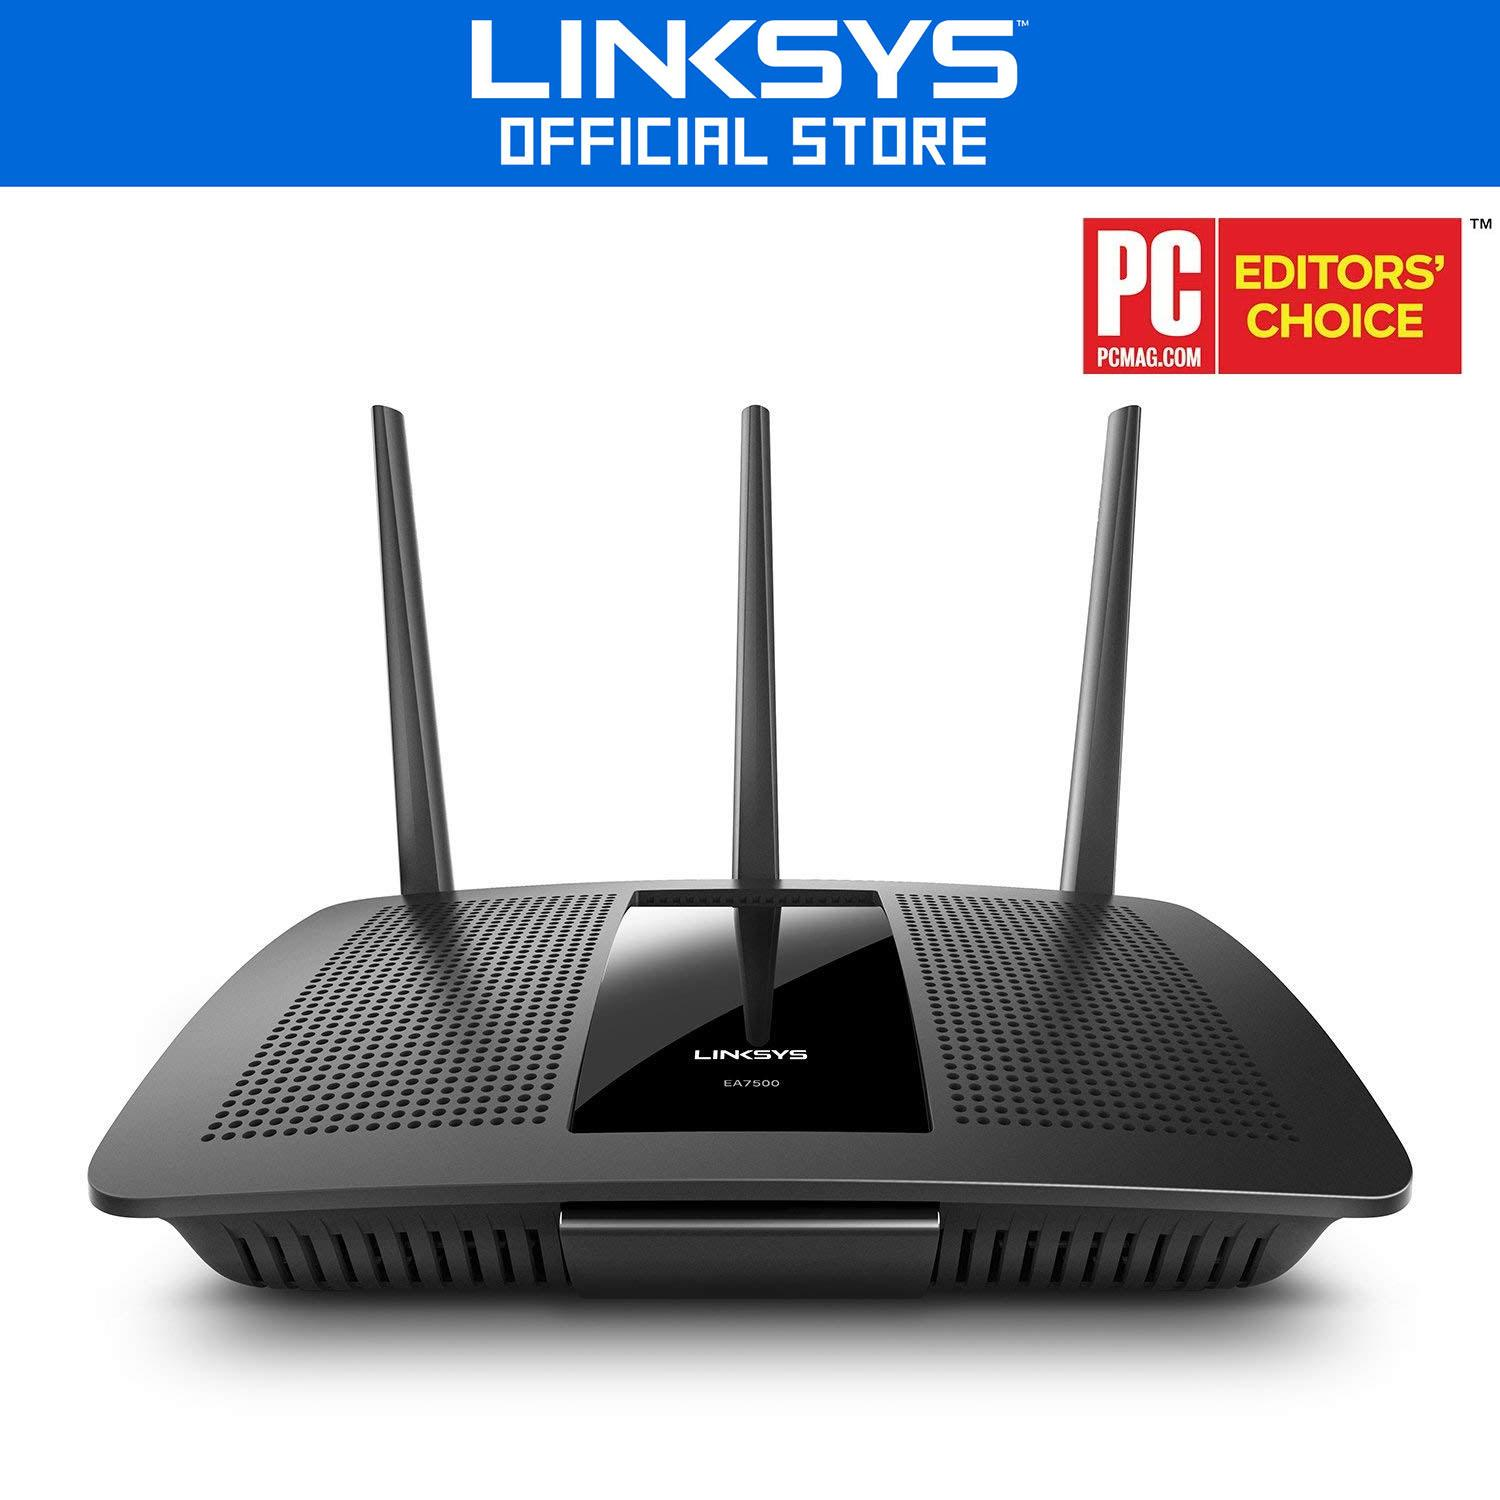 Linksys4500 Connecting Laptop To Wireless Wire Center Five Trailer Wiring Along With Patent Us5354204 Harness Linksys Routers Philippines Internet For Sale Rh Lazada Com Ph